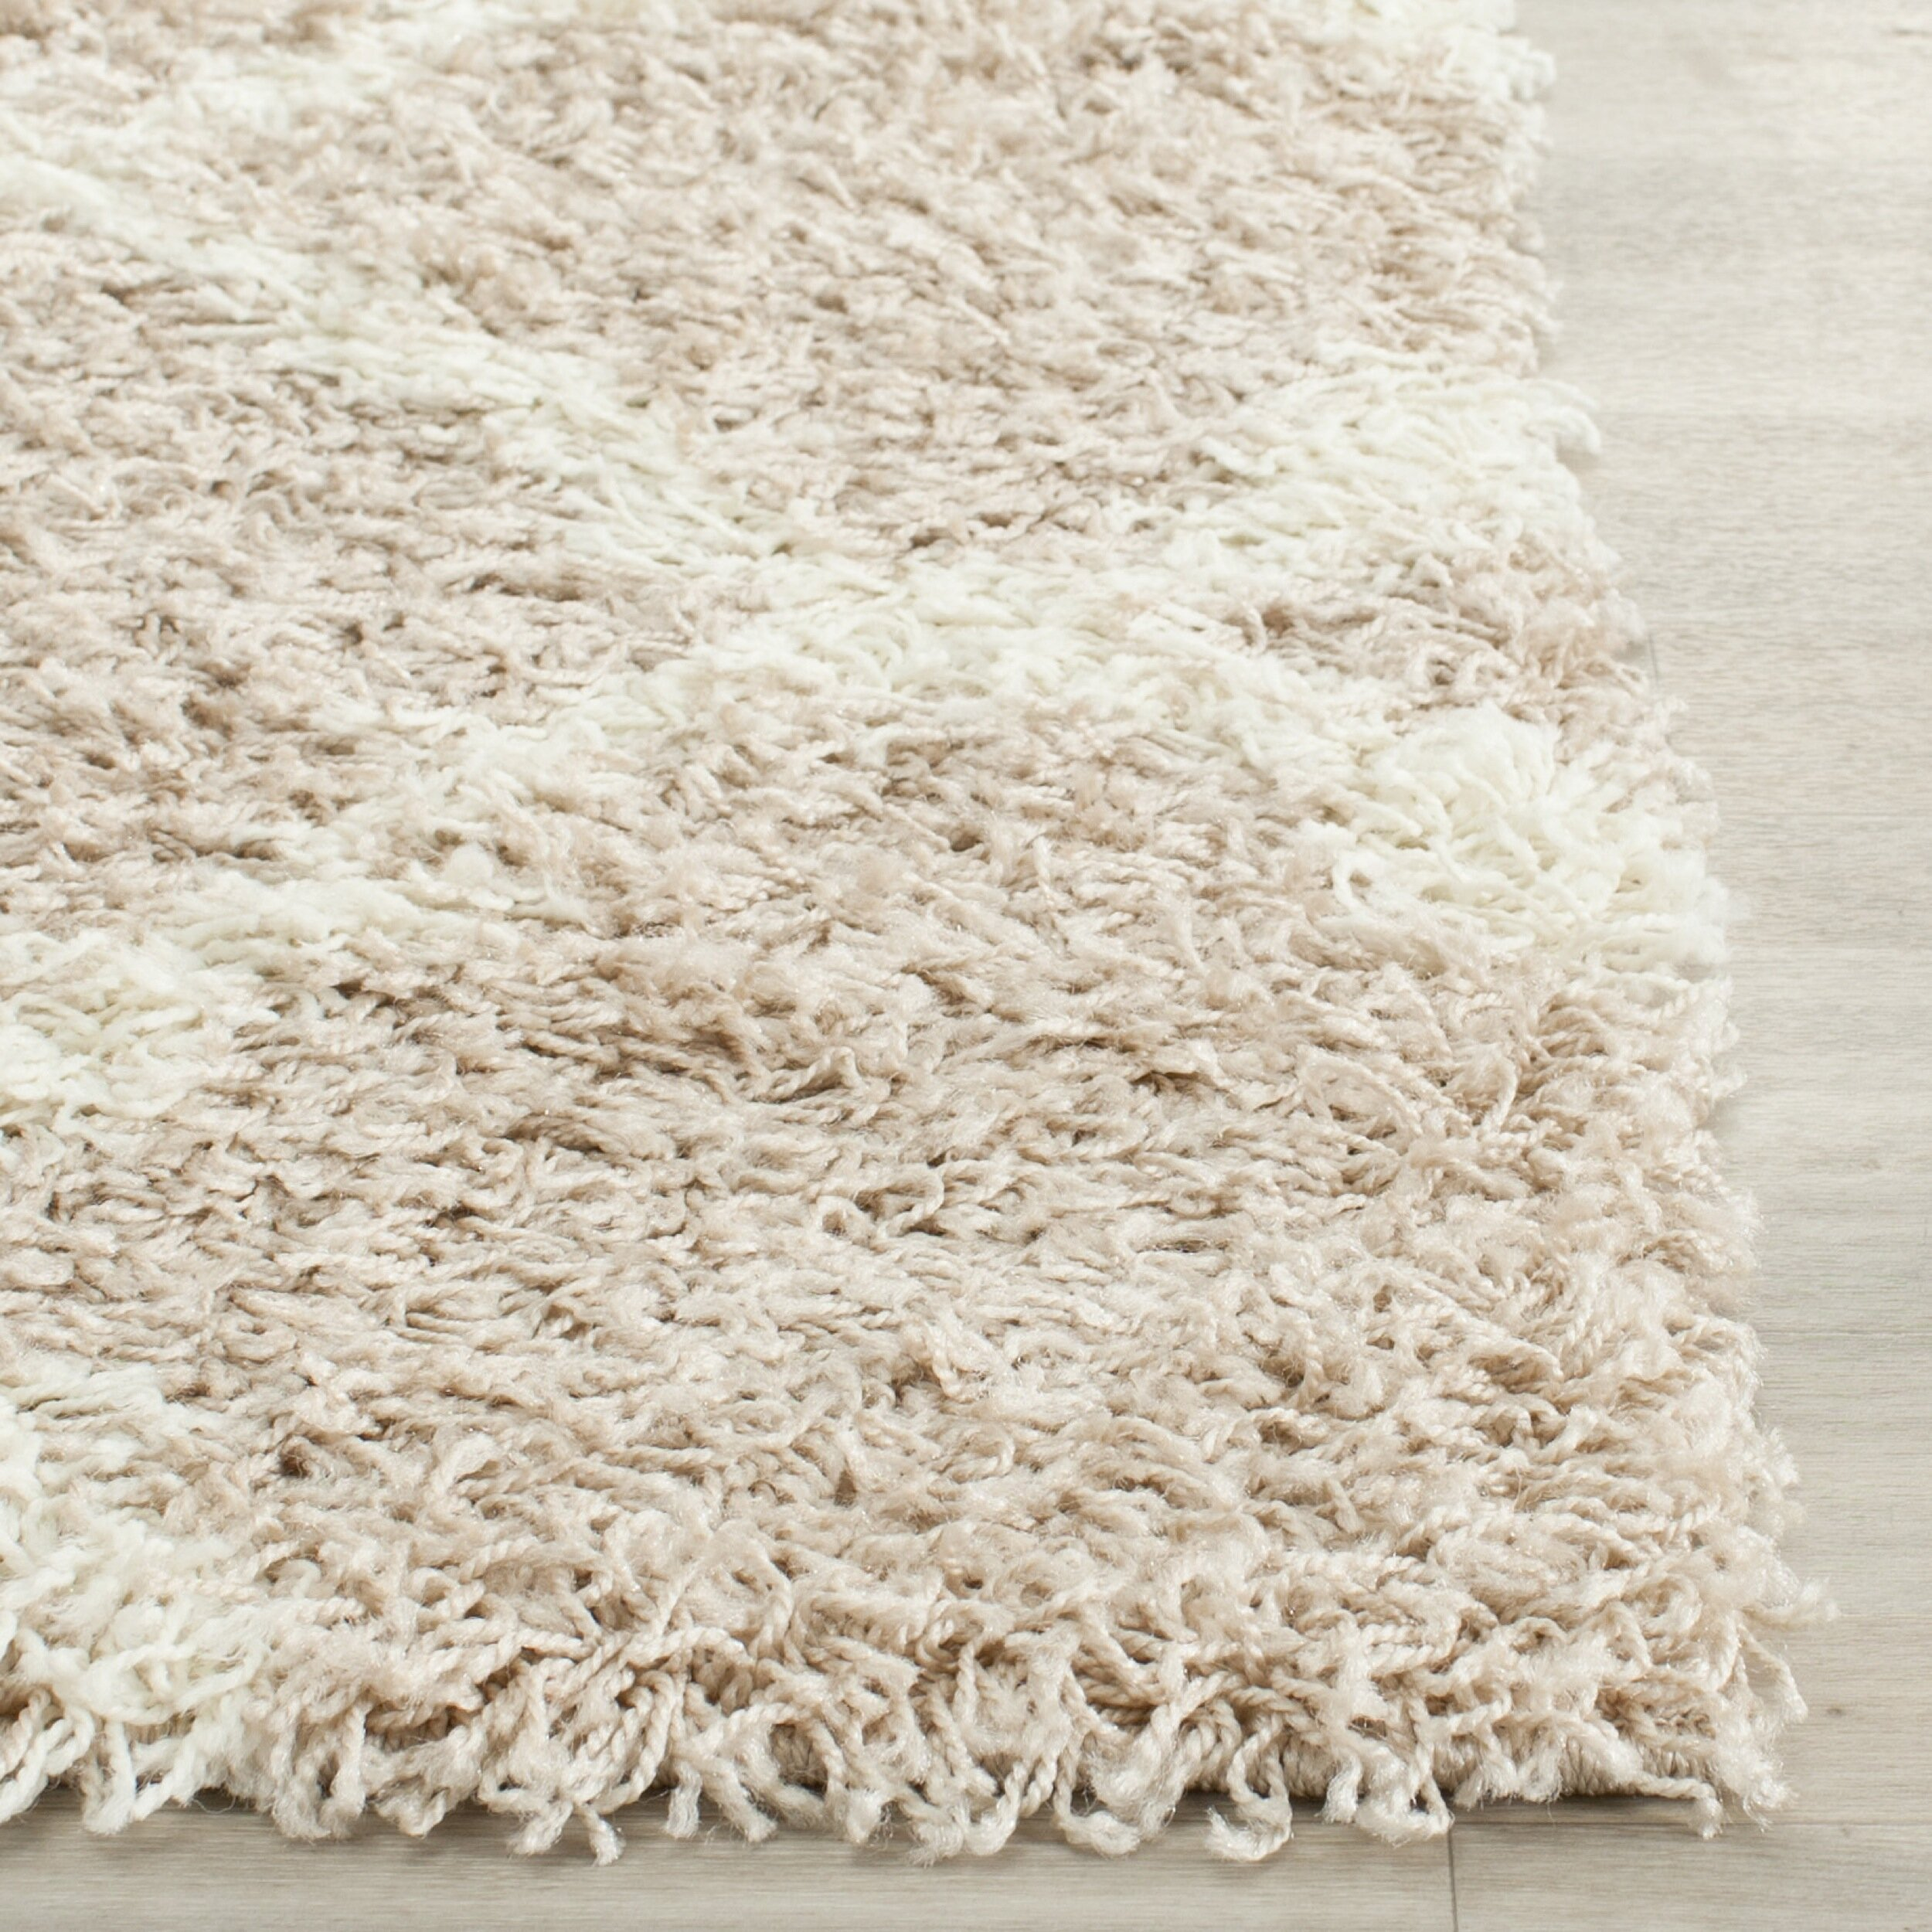 Safavieh Dallas Shag BeigeIvory Area Rug amp Reviews Wayfair : Safavieh Dallas Shag Beige Ivory Area Rug SGD257D from www.wayfair.com size 2500 x 2500 jpeg 1369kB